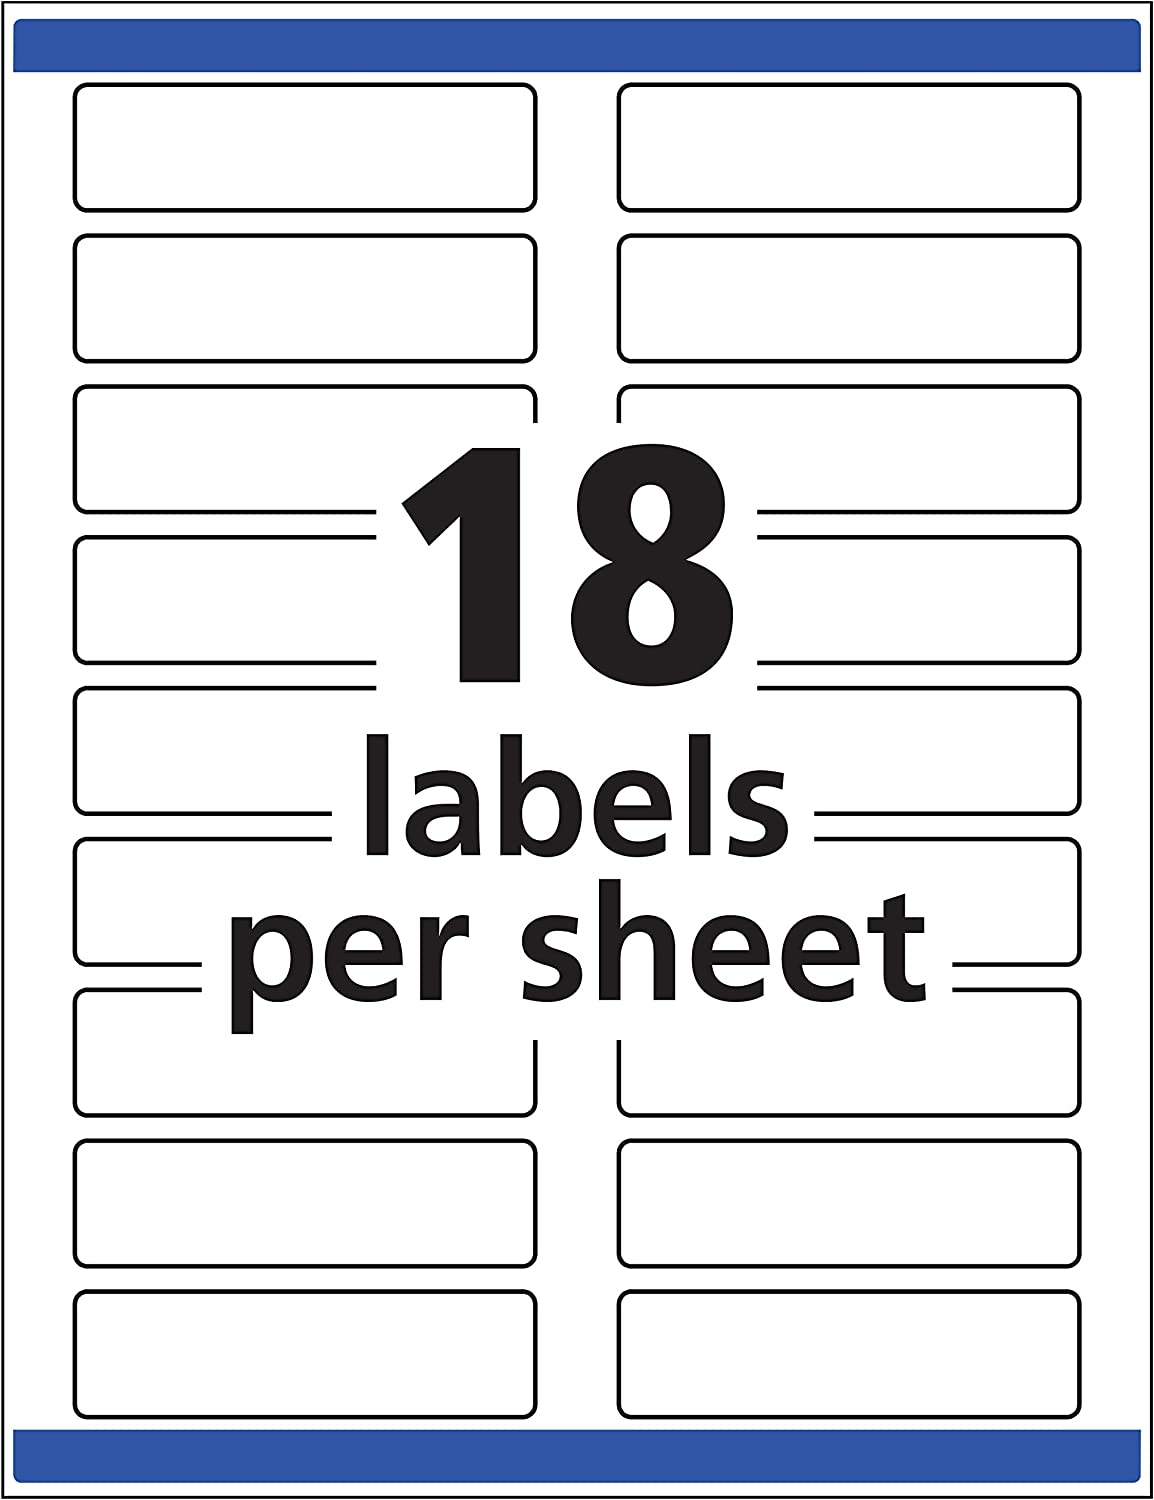 Avery White Extra-Large File Folder Labels for Laser and Inkjet Printers with TrueBlock Technology, 15/16 inches x 3-7/16 inches, Pack of 450 (5027) : Office Products